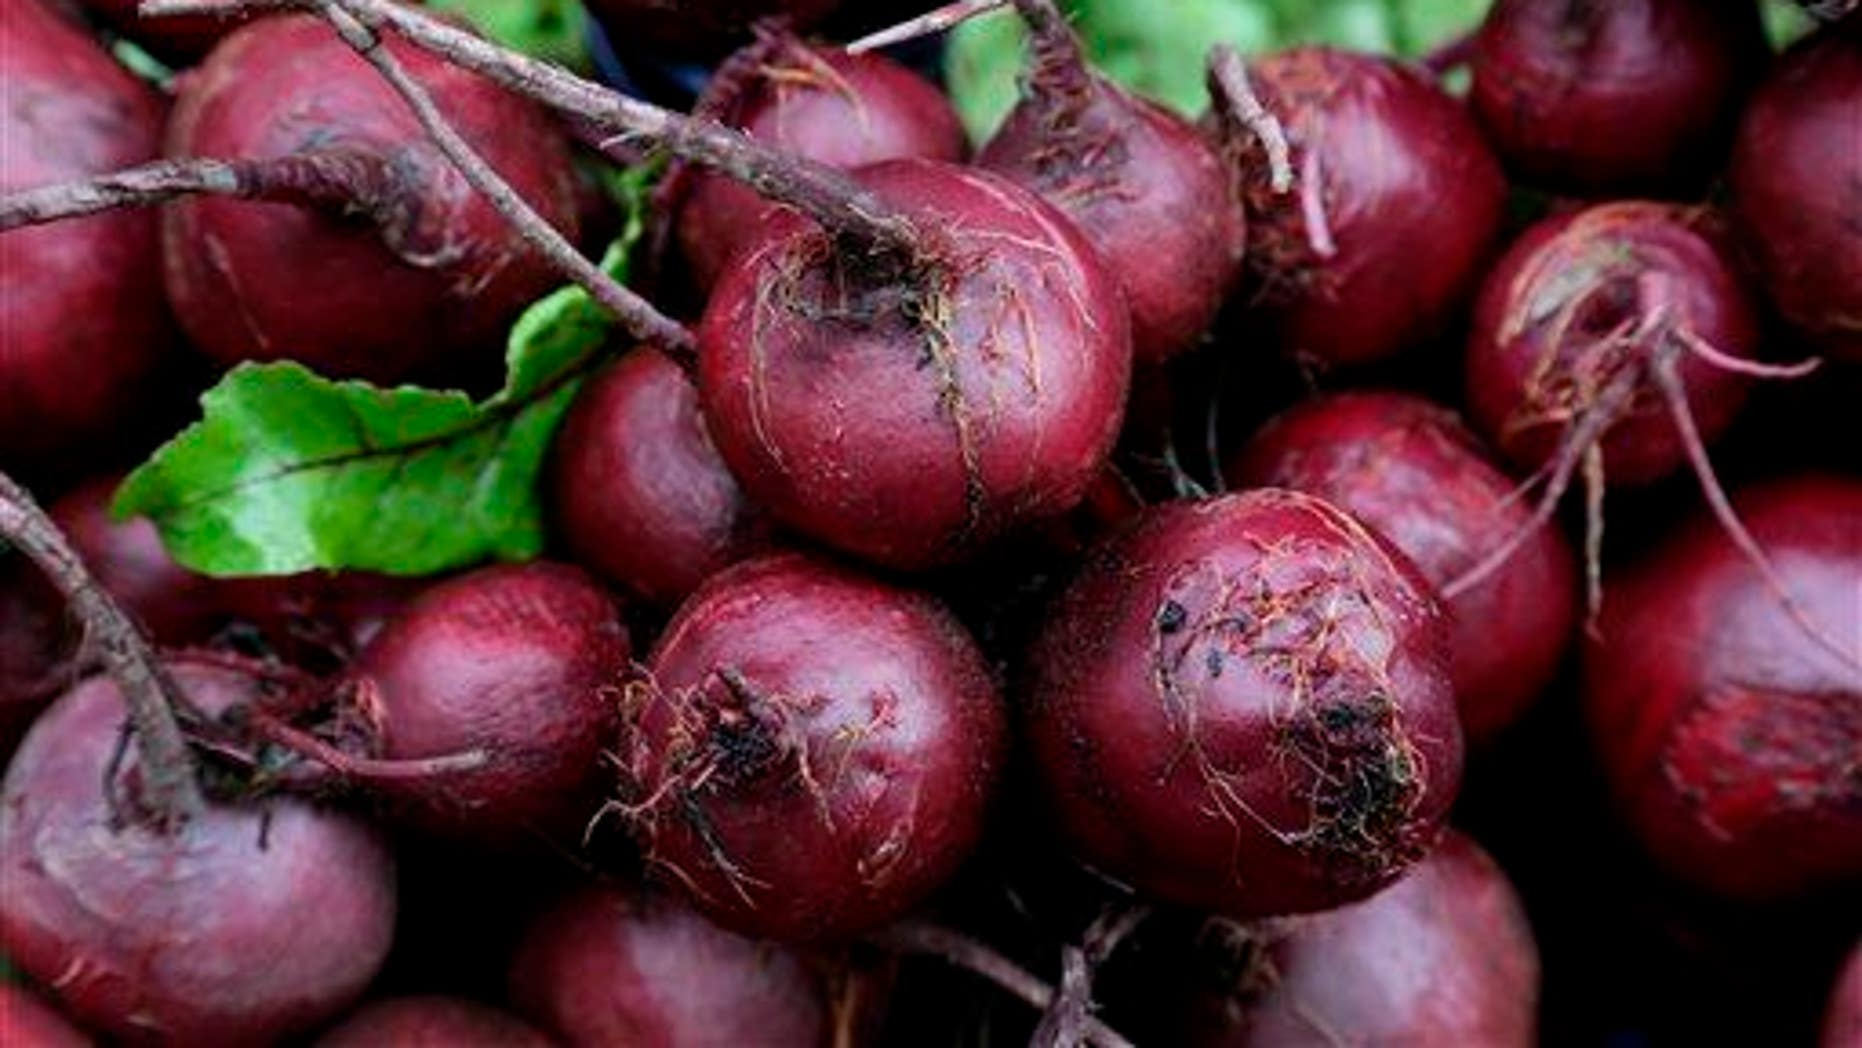 Beets are shown.